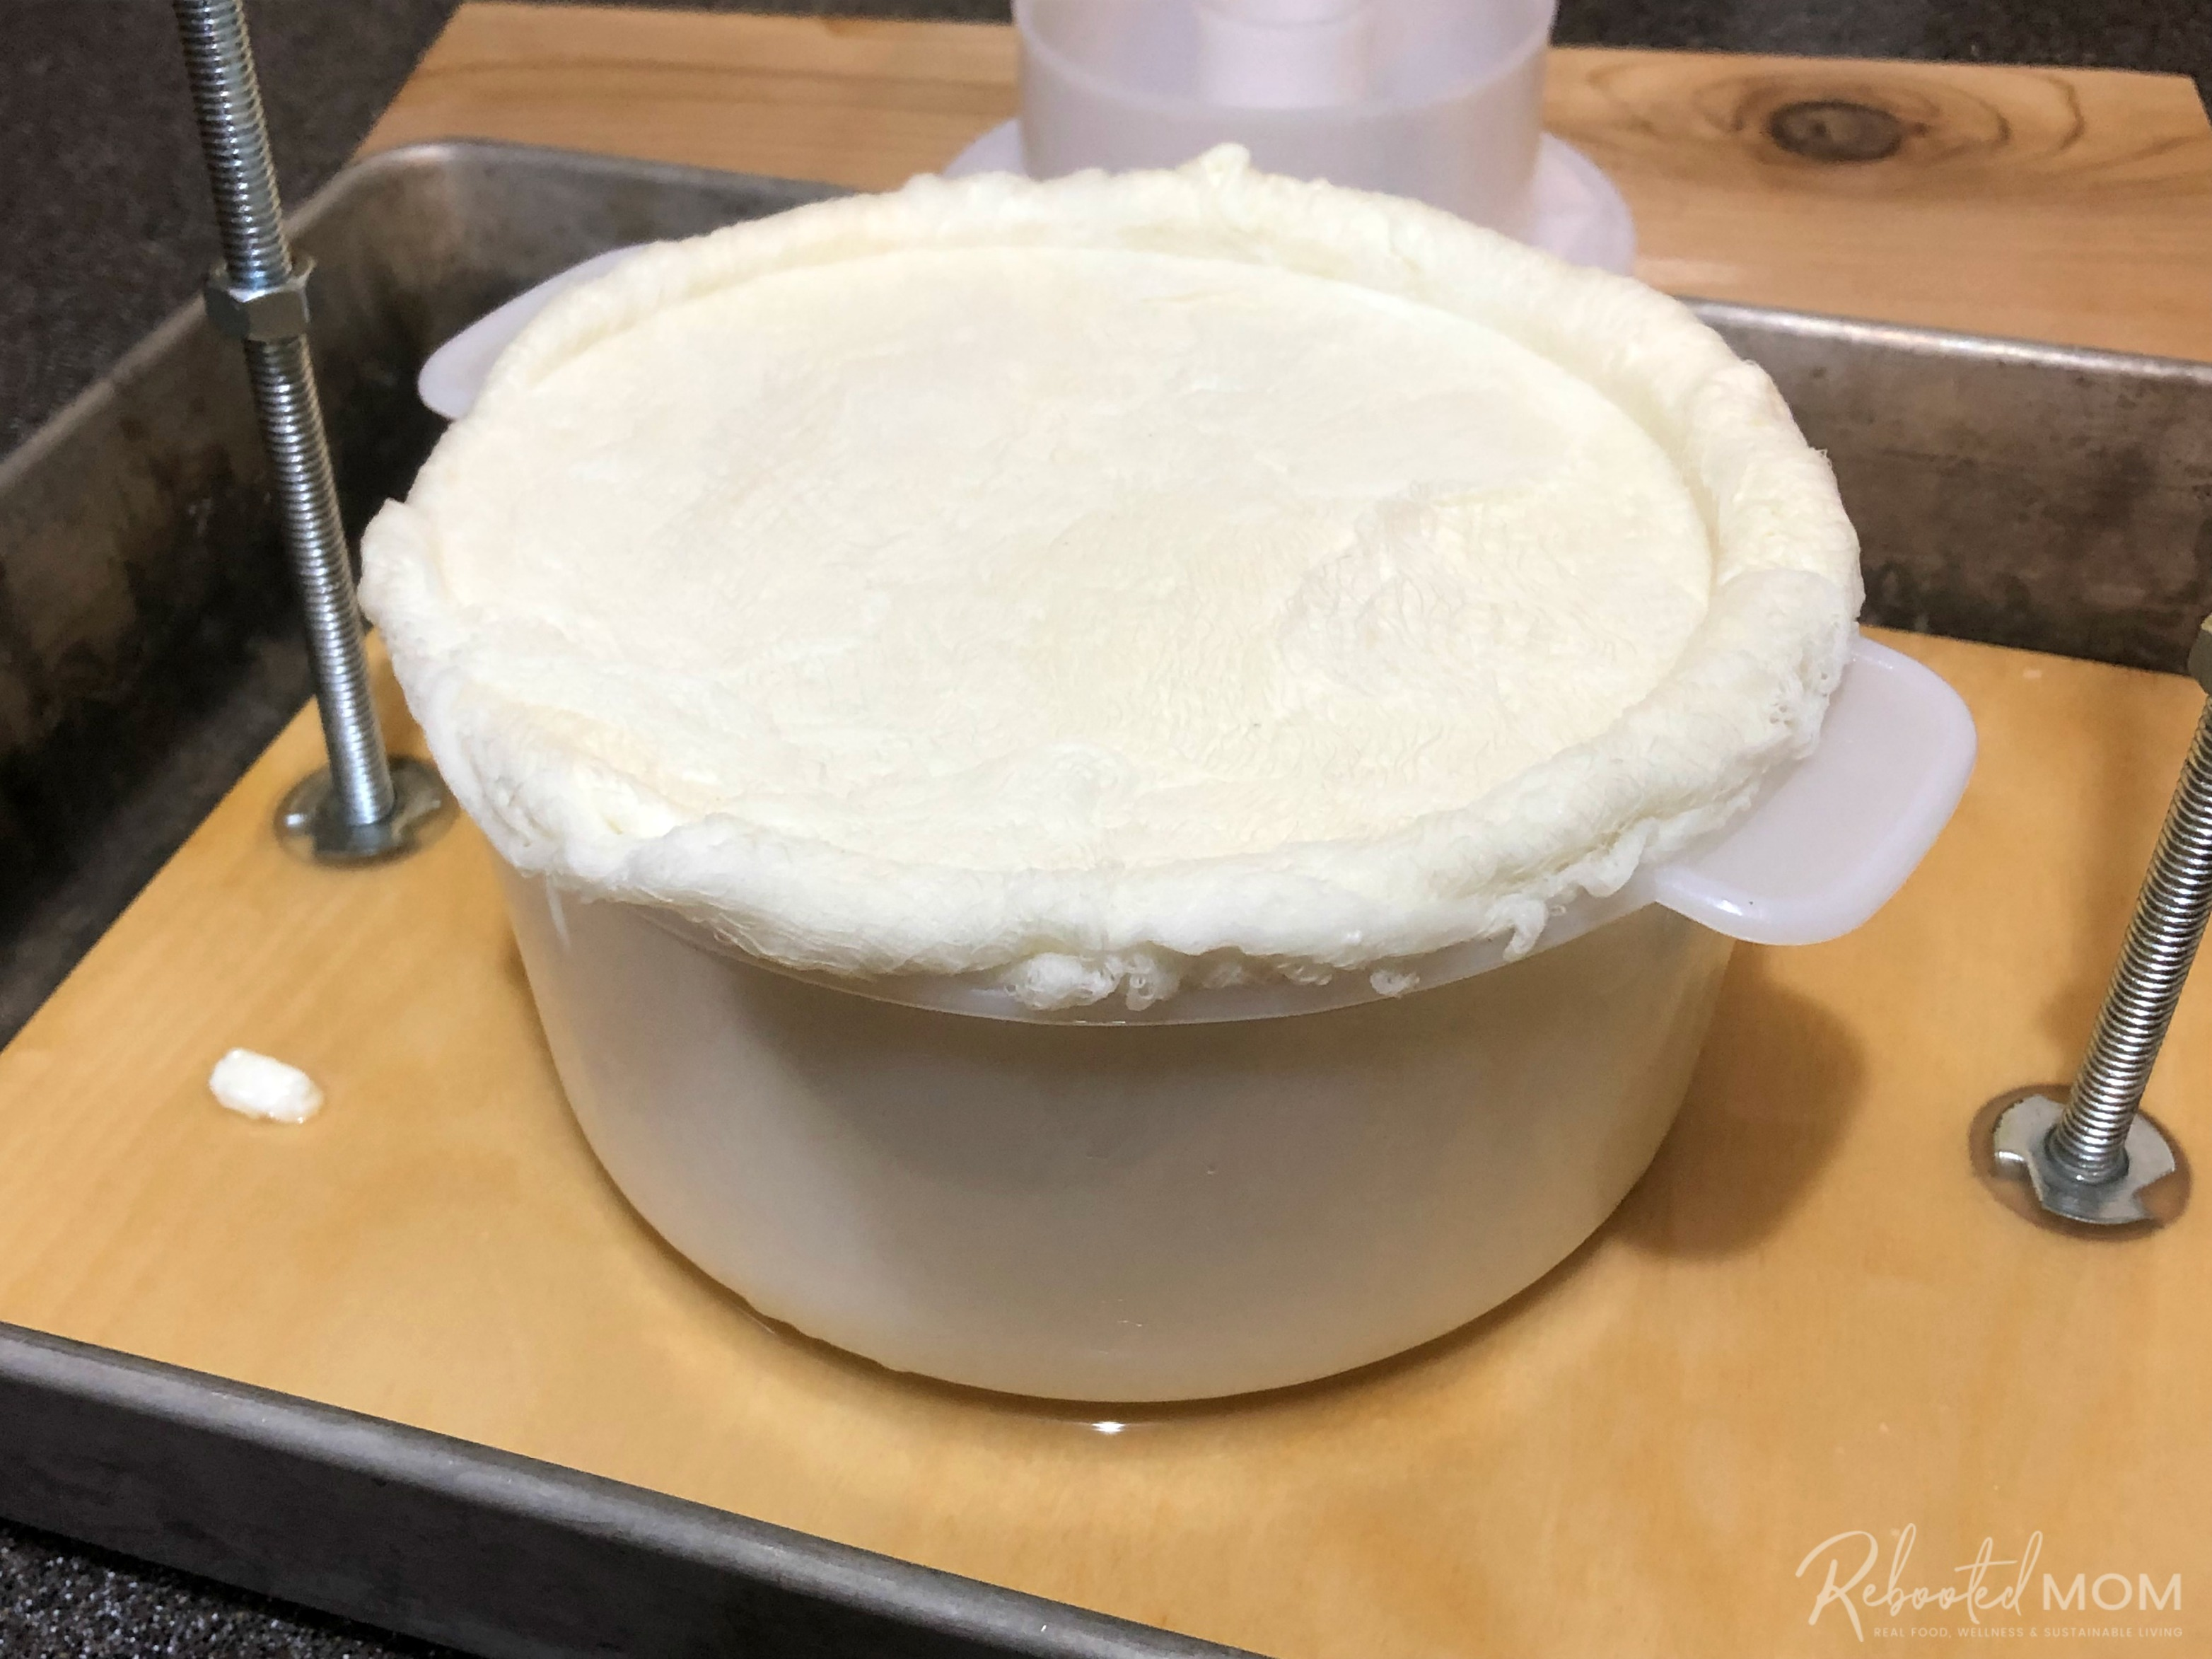 Monterey Jack Cheese - put curds in mold